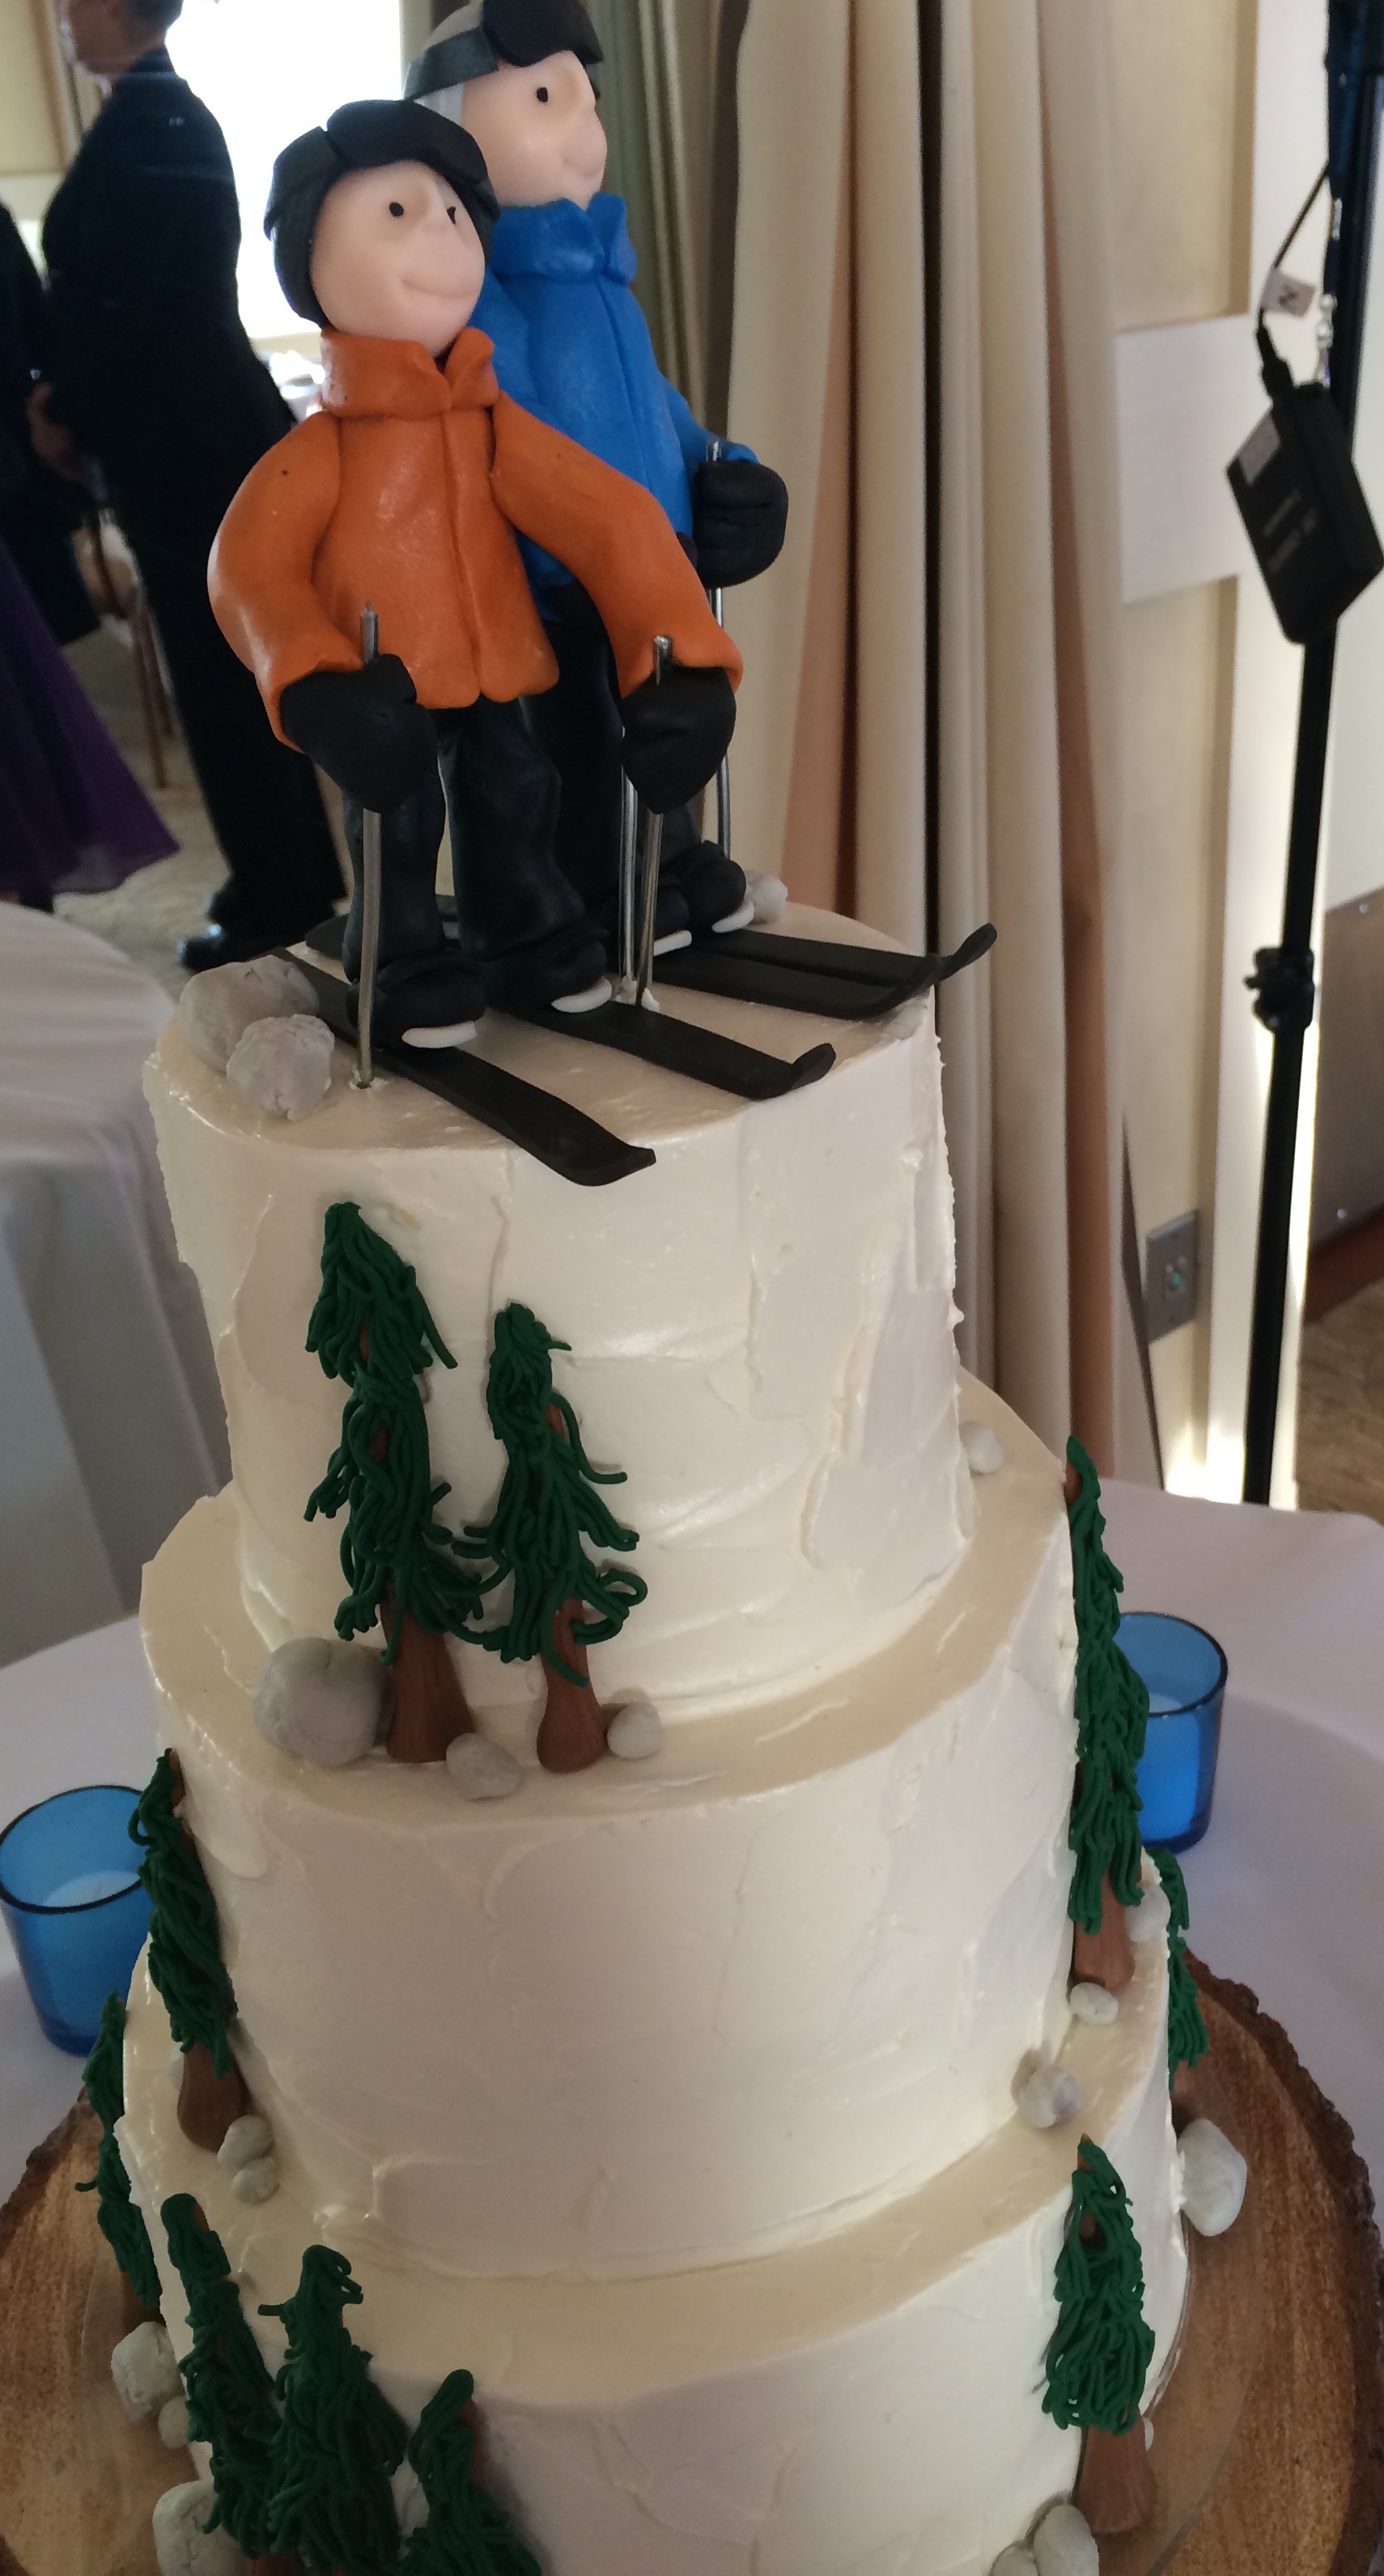 They met skiing in Lake Tahoe. This was their wedding cake